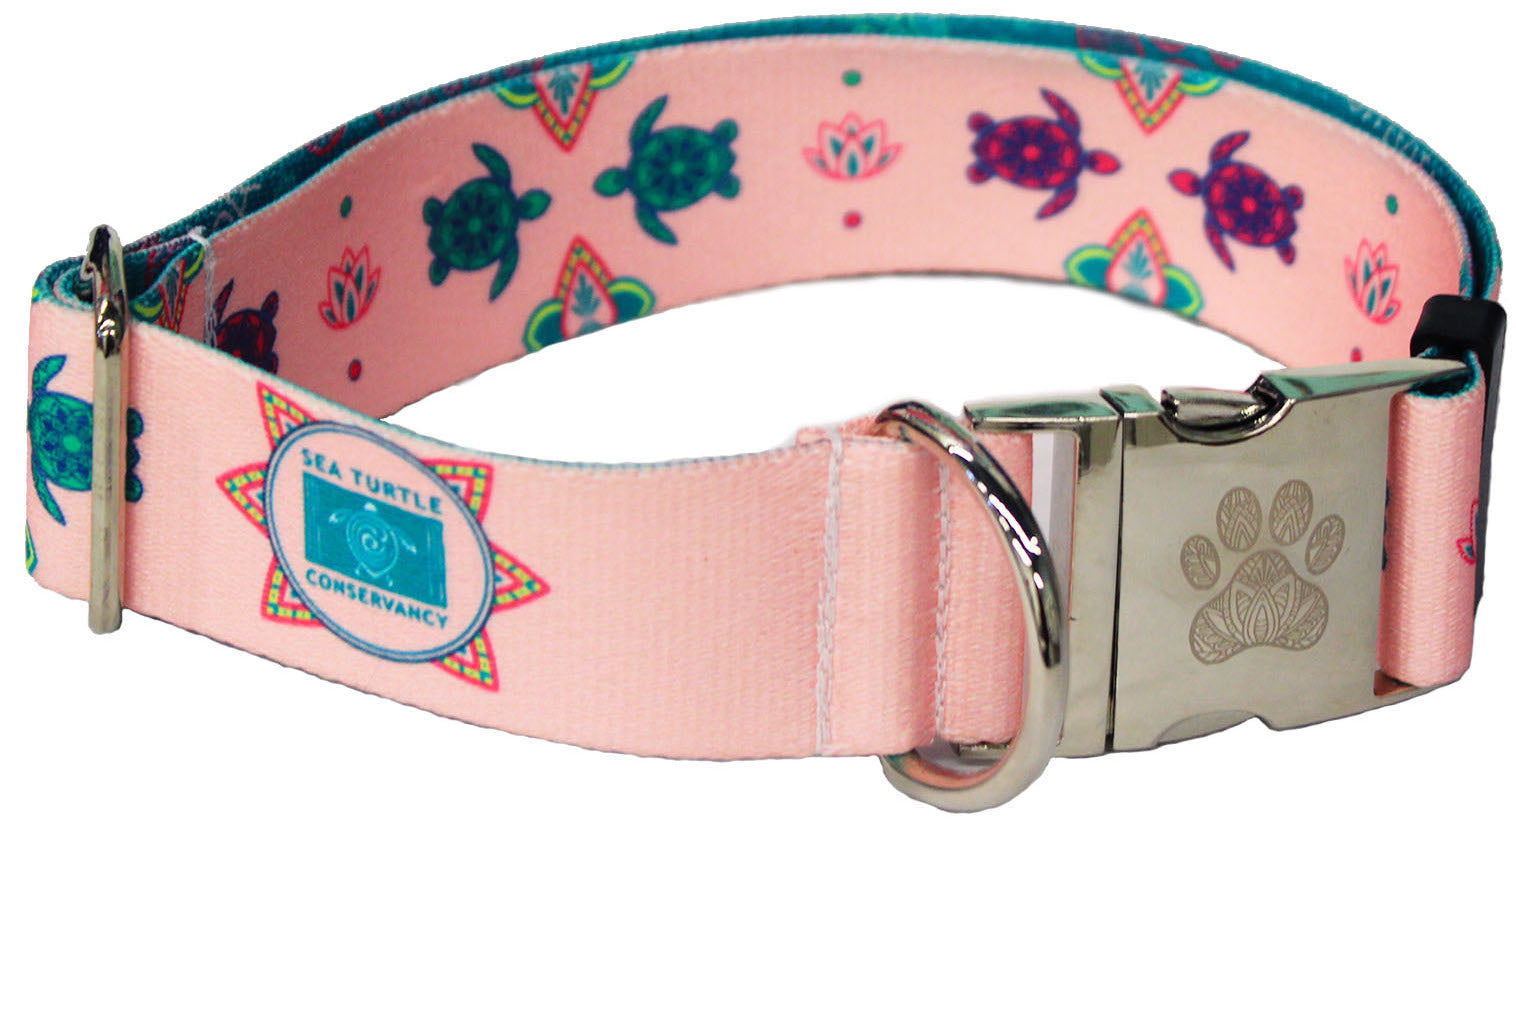 Sea Turtle Conservancy Pink Lotus Turtle Statement Collar